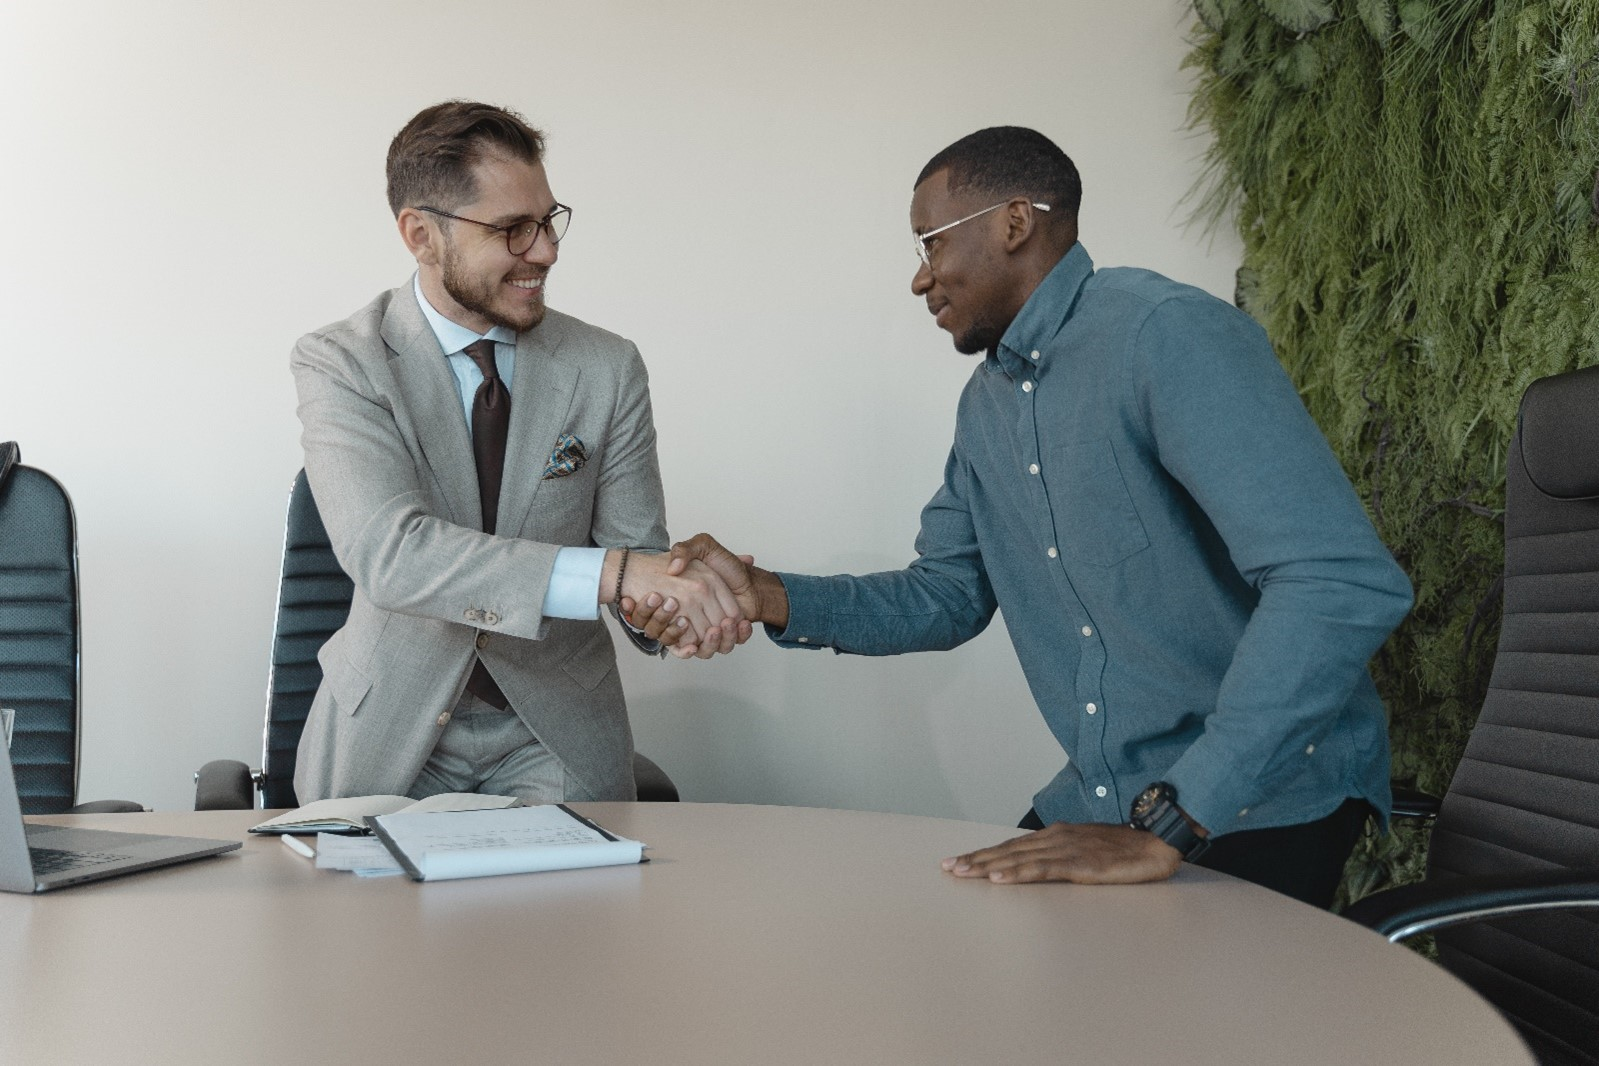 Two people shaking hands in an office